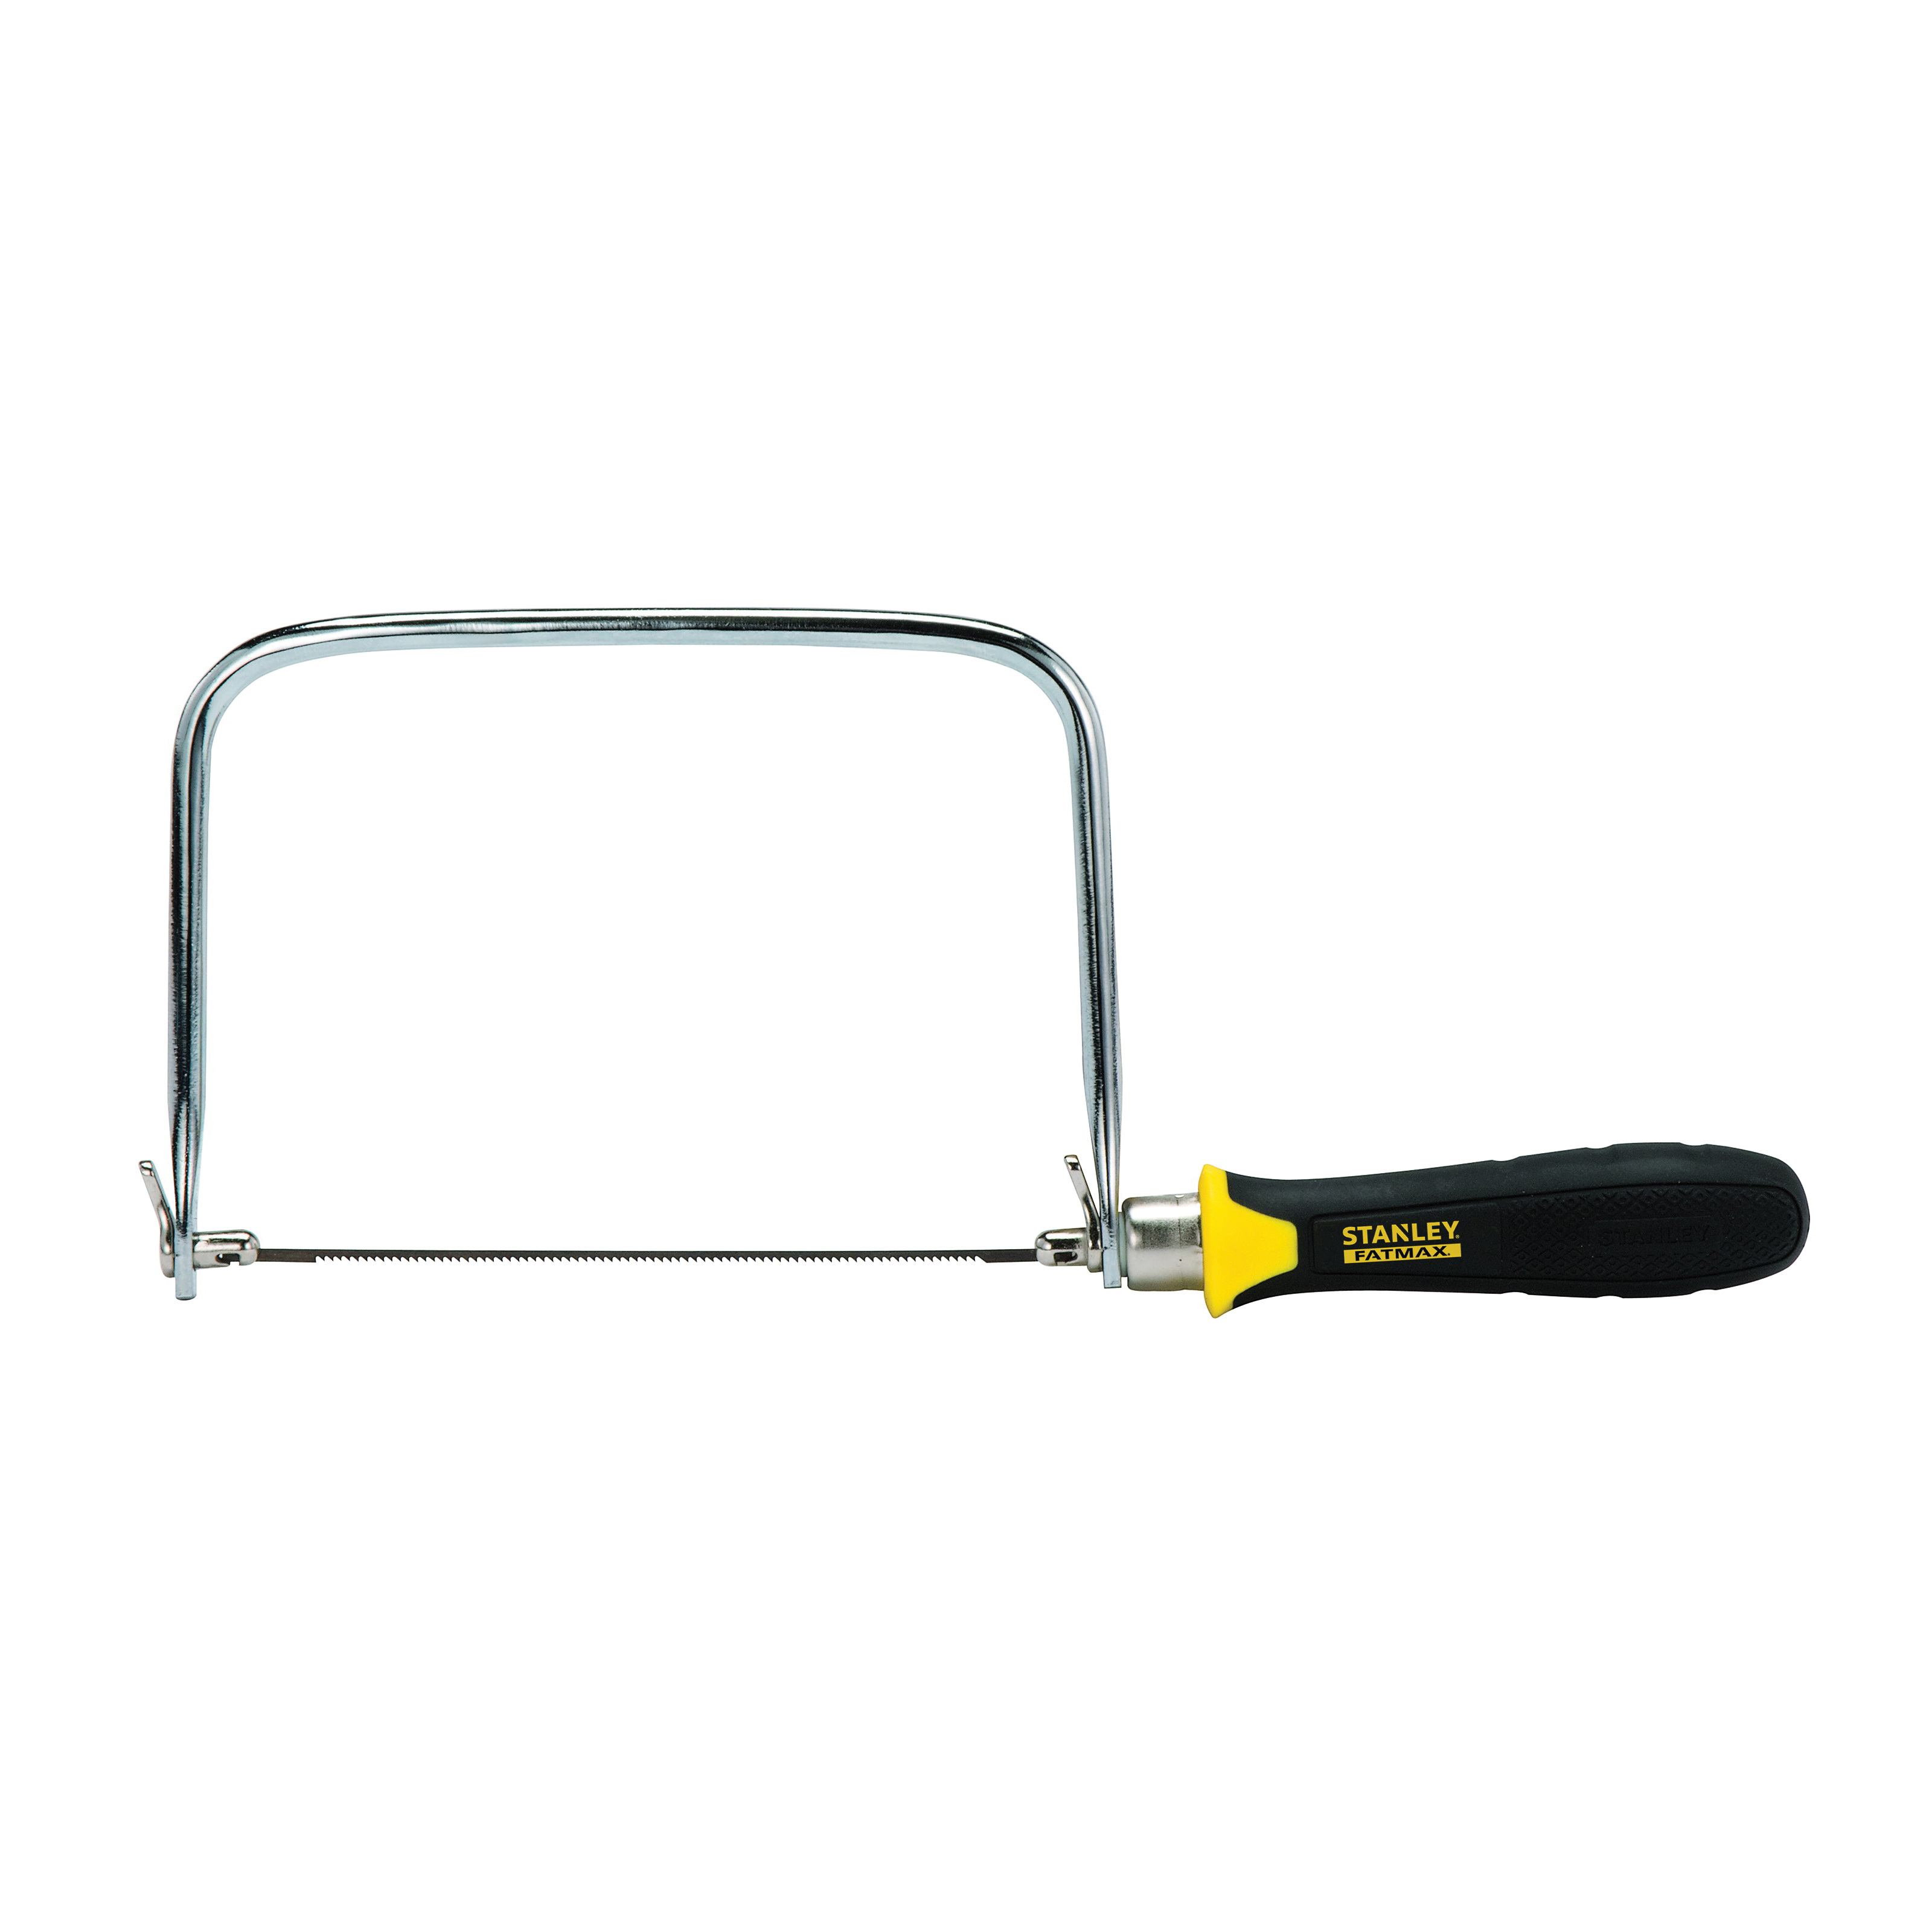 Picture of STANLEY FATMAX 15-104 Coping Saw, 6-1/2 in L Blade, 15 TPI, HCS Blade, Cushion-Grip Handle, Plastic/Rubber Handle